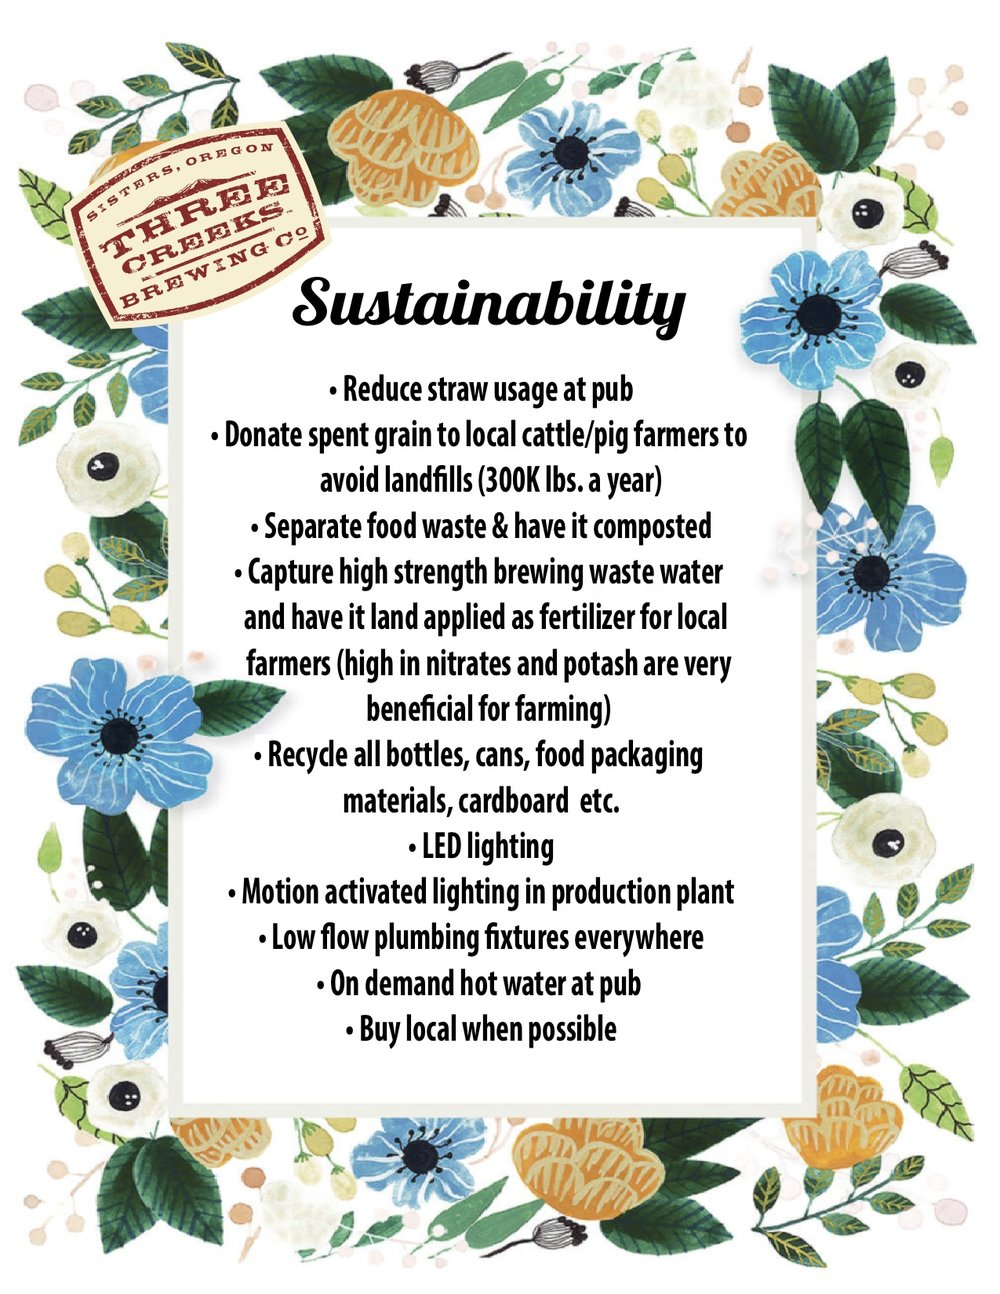 Sustainability copy.jpg